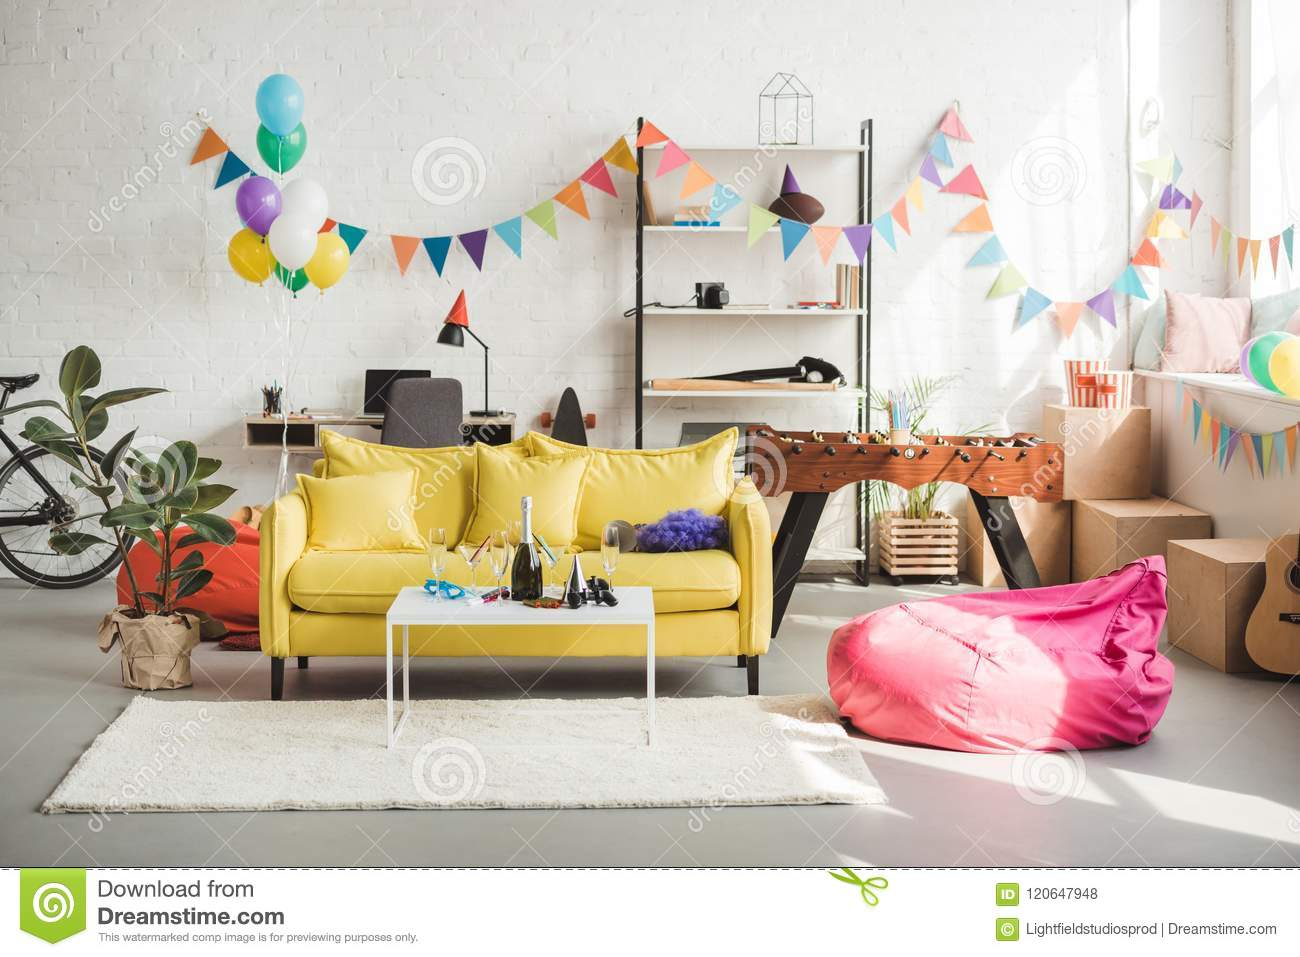 Interior of cozy room decorated with balloons and garland